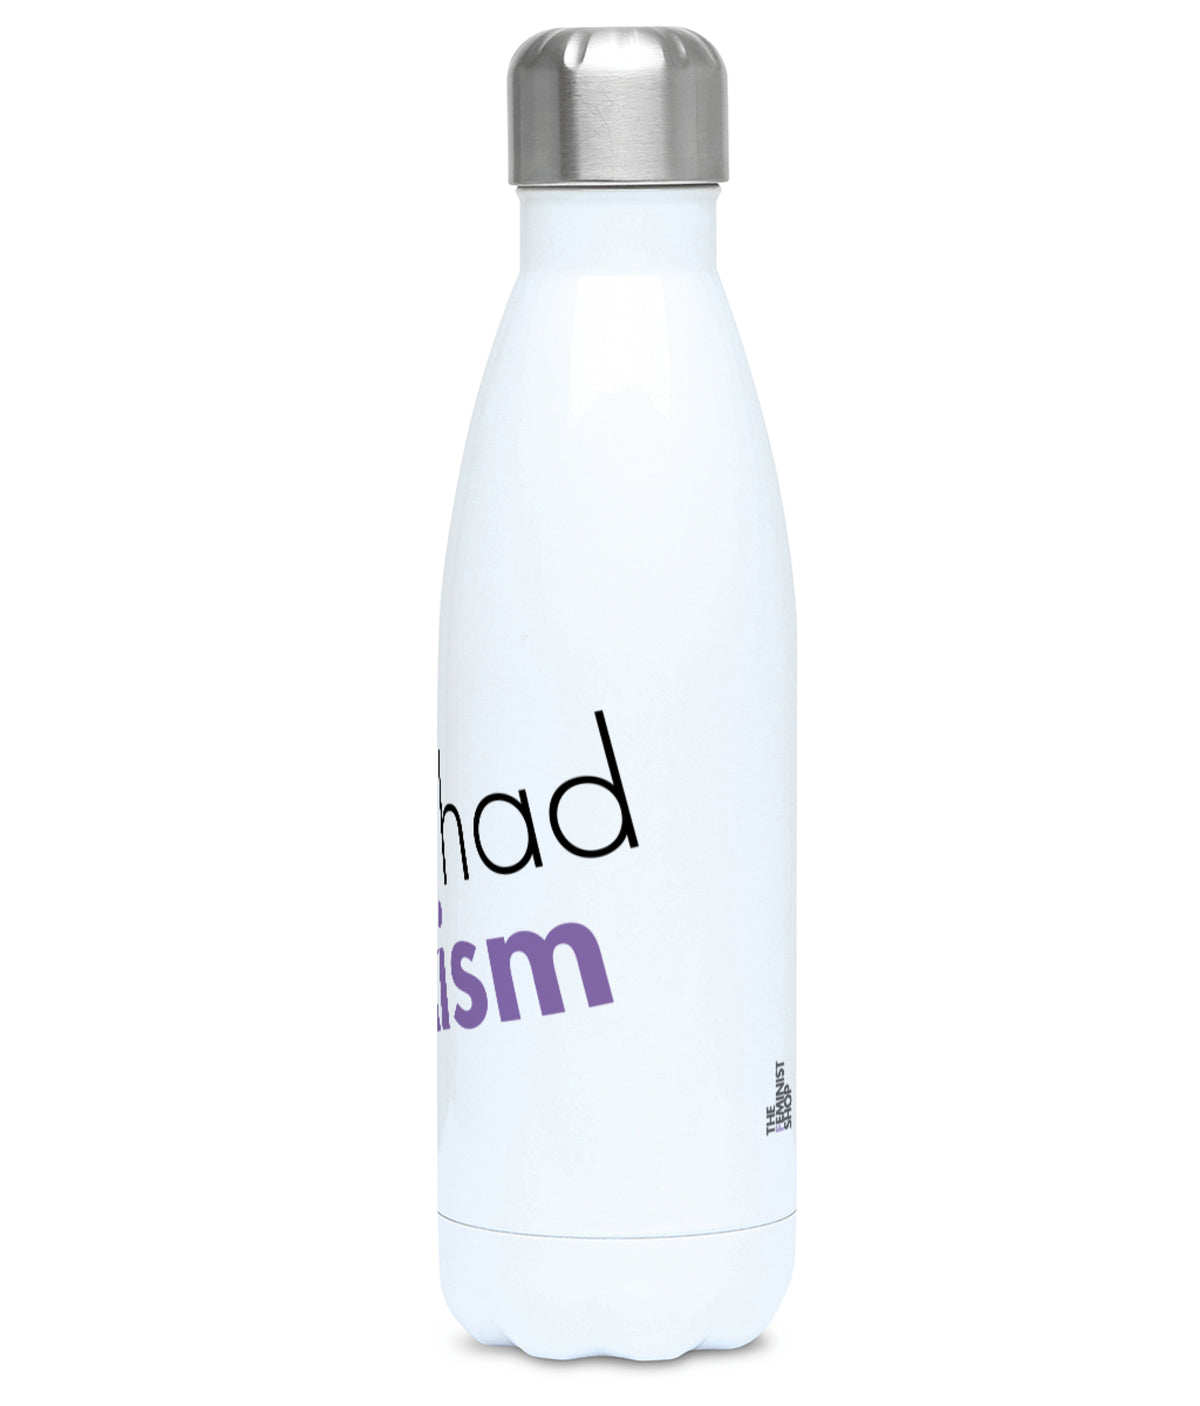 Feminist Water Bottle - I Just Had Sexism - Right